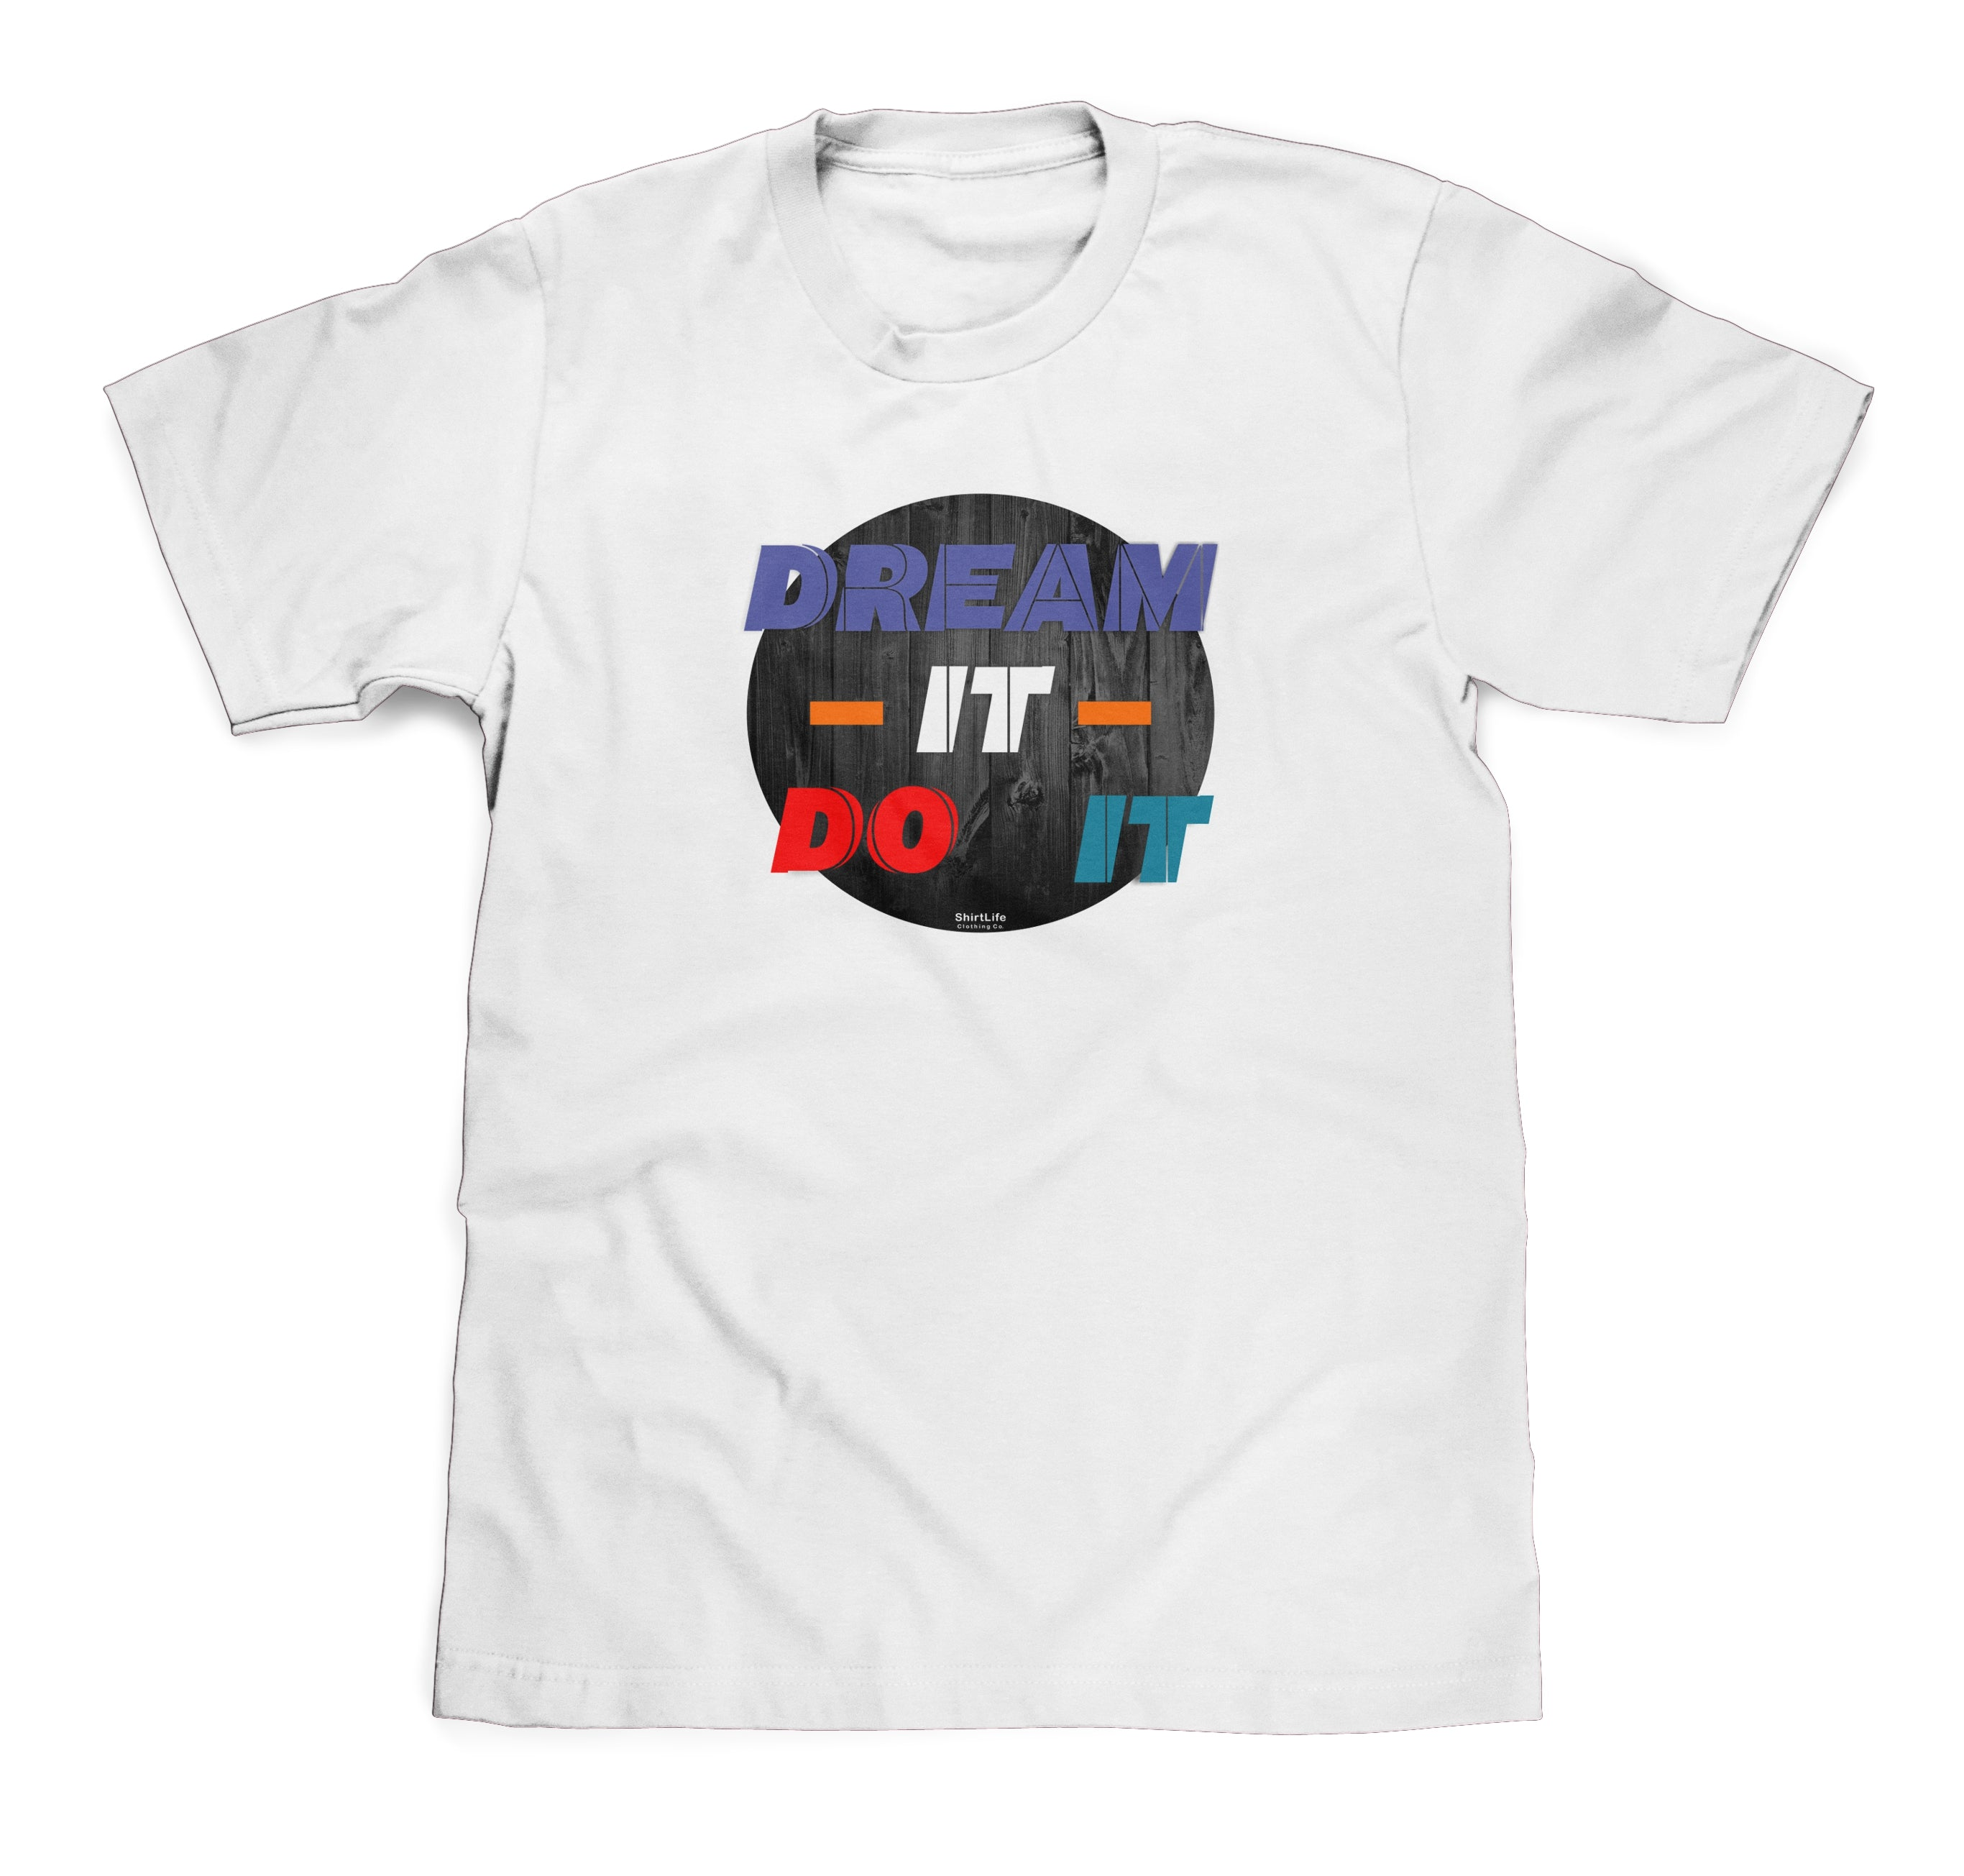 Dream it Do it White Tee To Match Air Jordan Retro 9 Sneakers